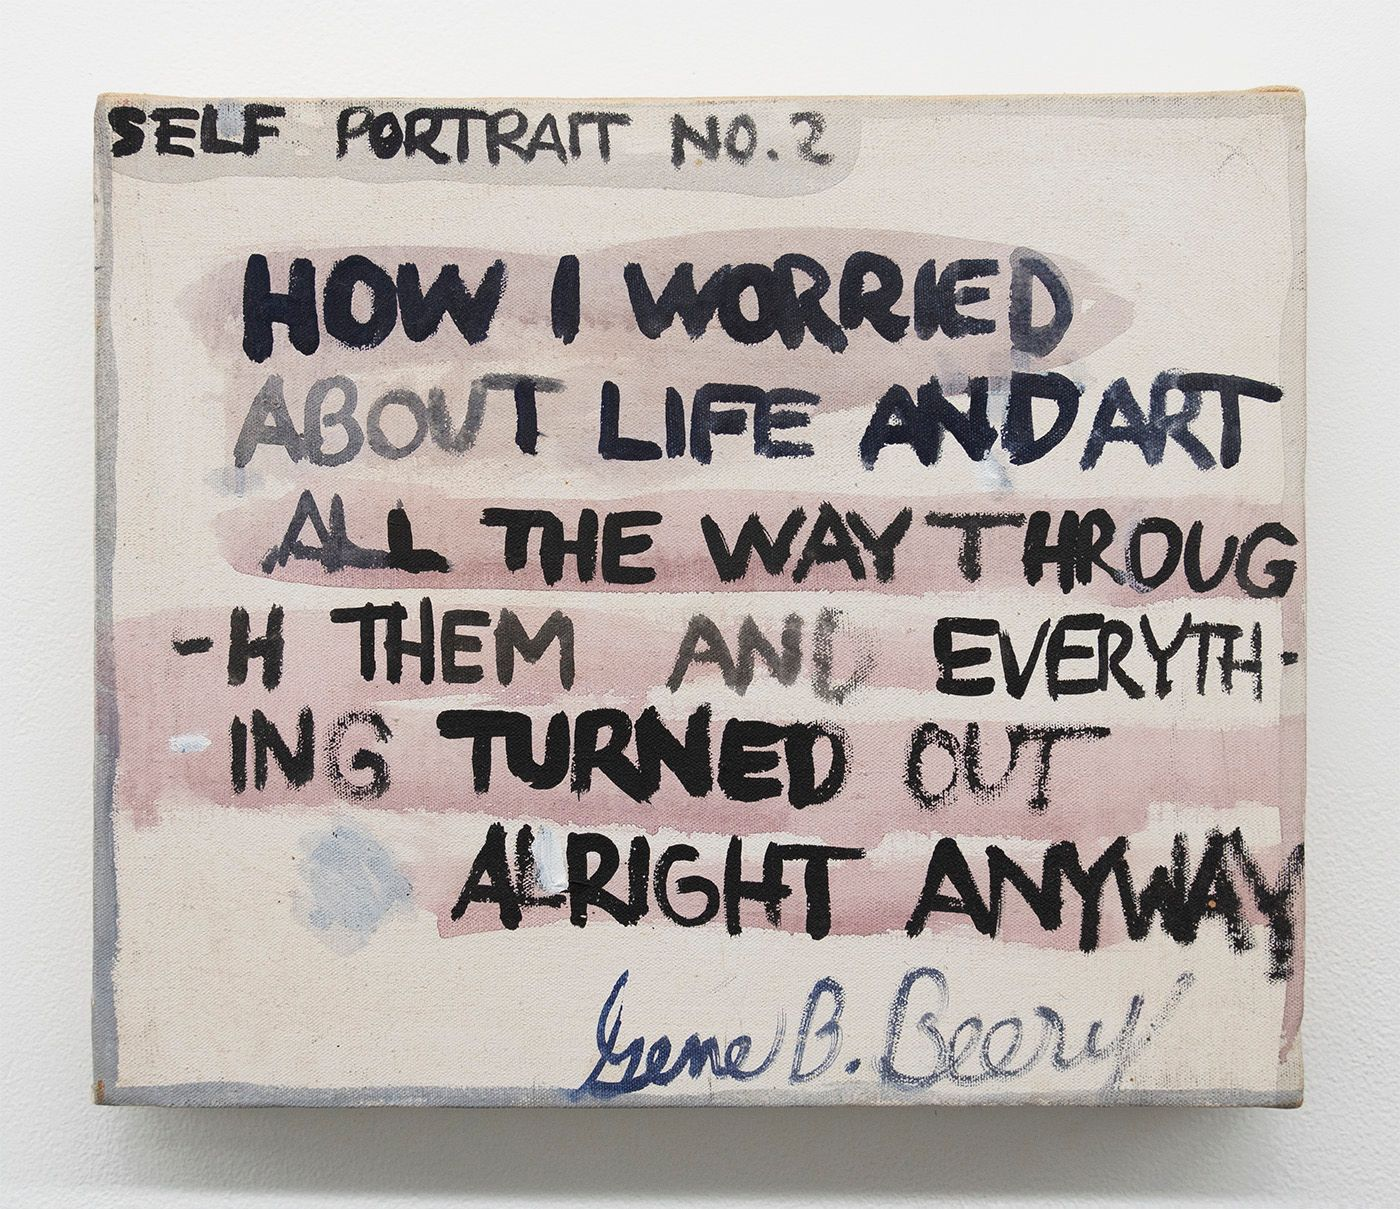 Gene Beery, How I Worried About Life and Art All the Way Through Them and Everything Turned out All Right Anyway, ca. 1990s